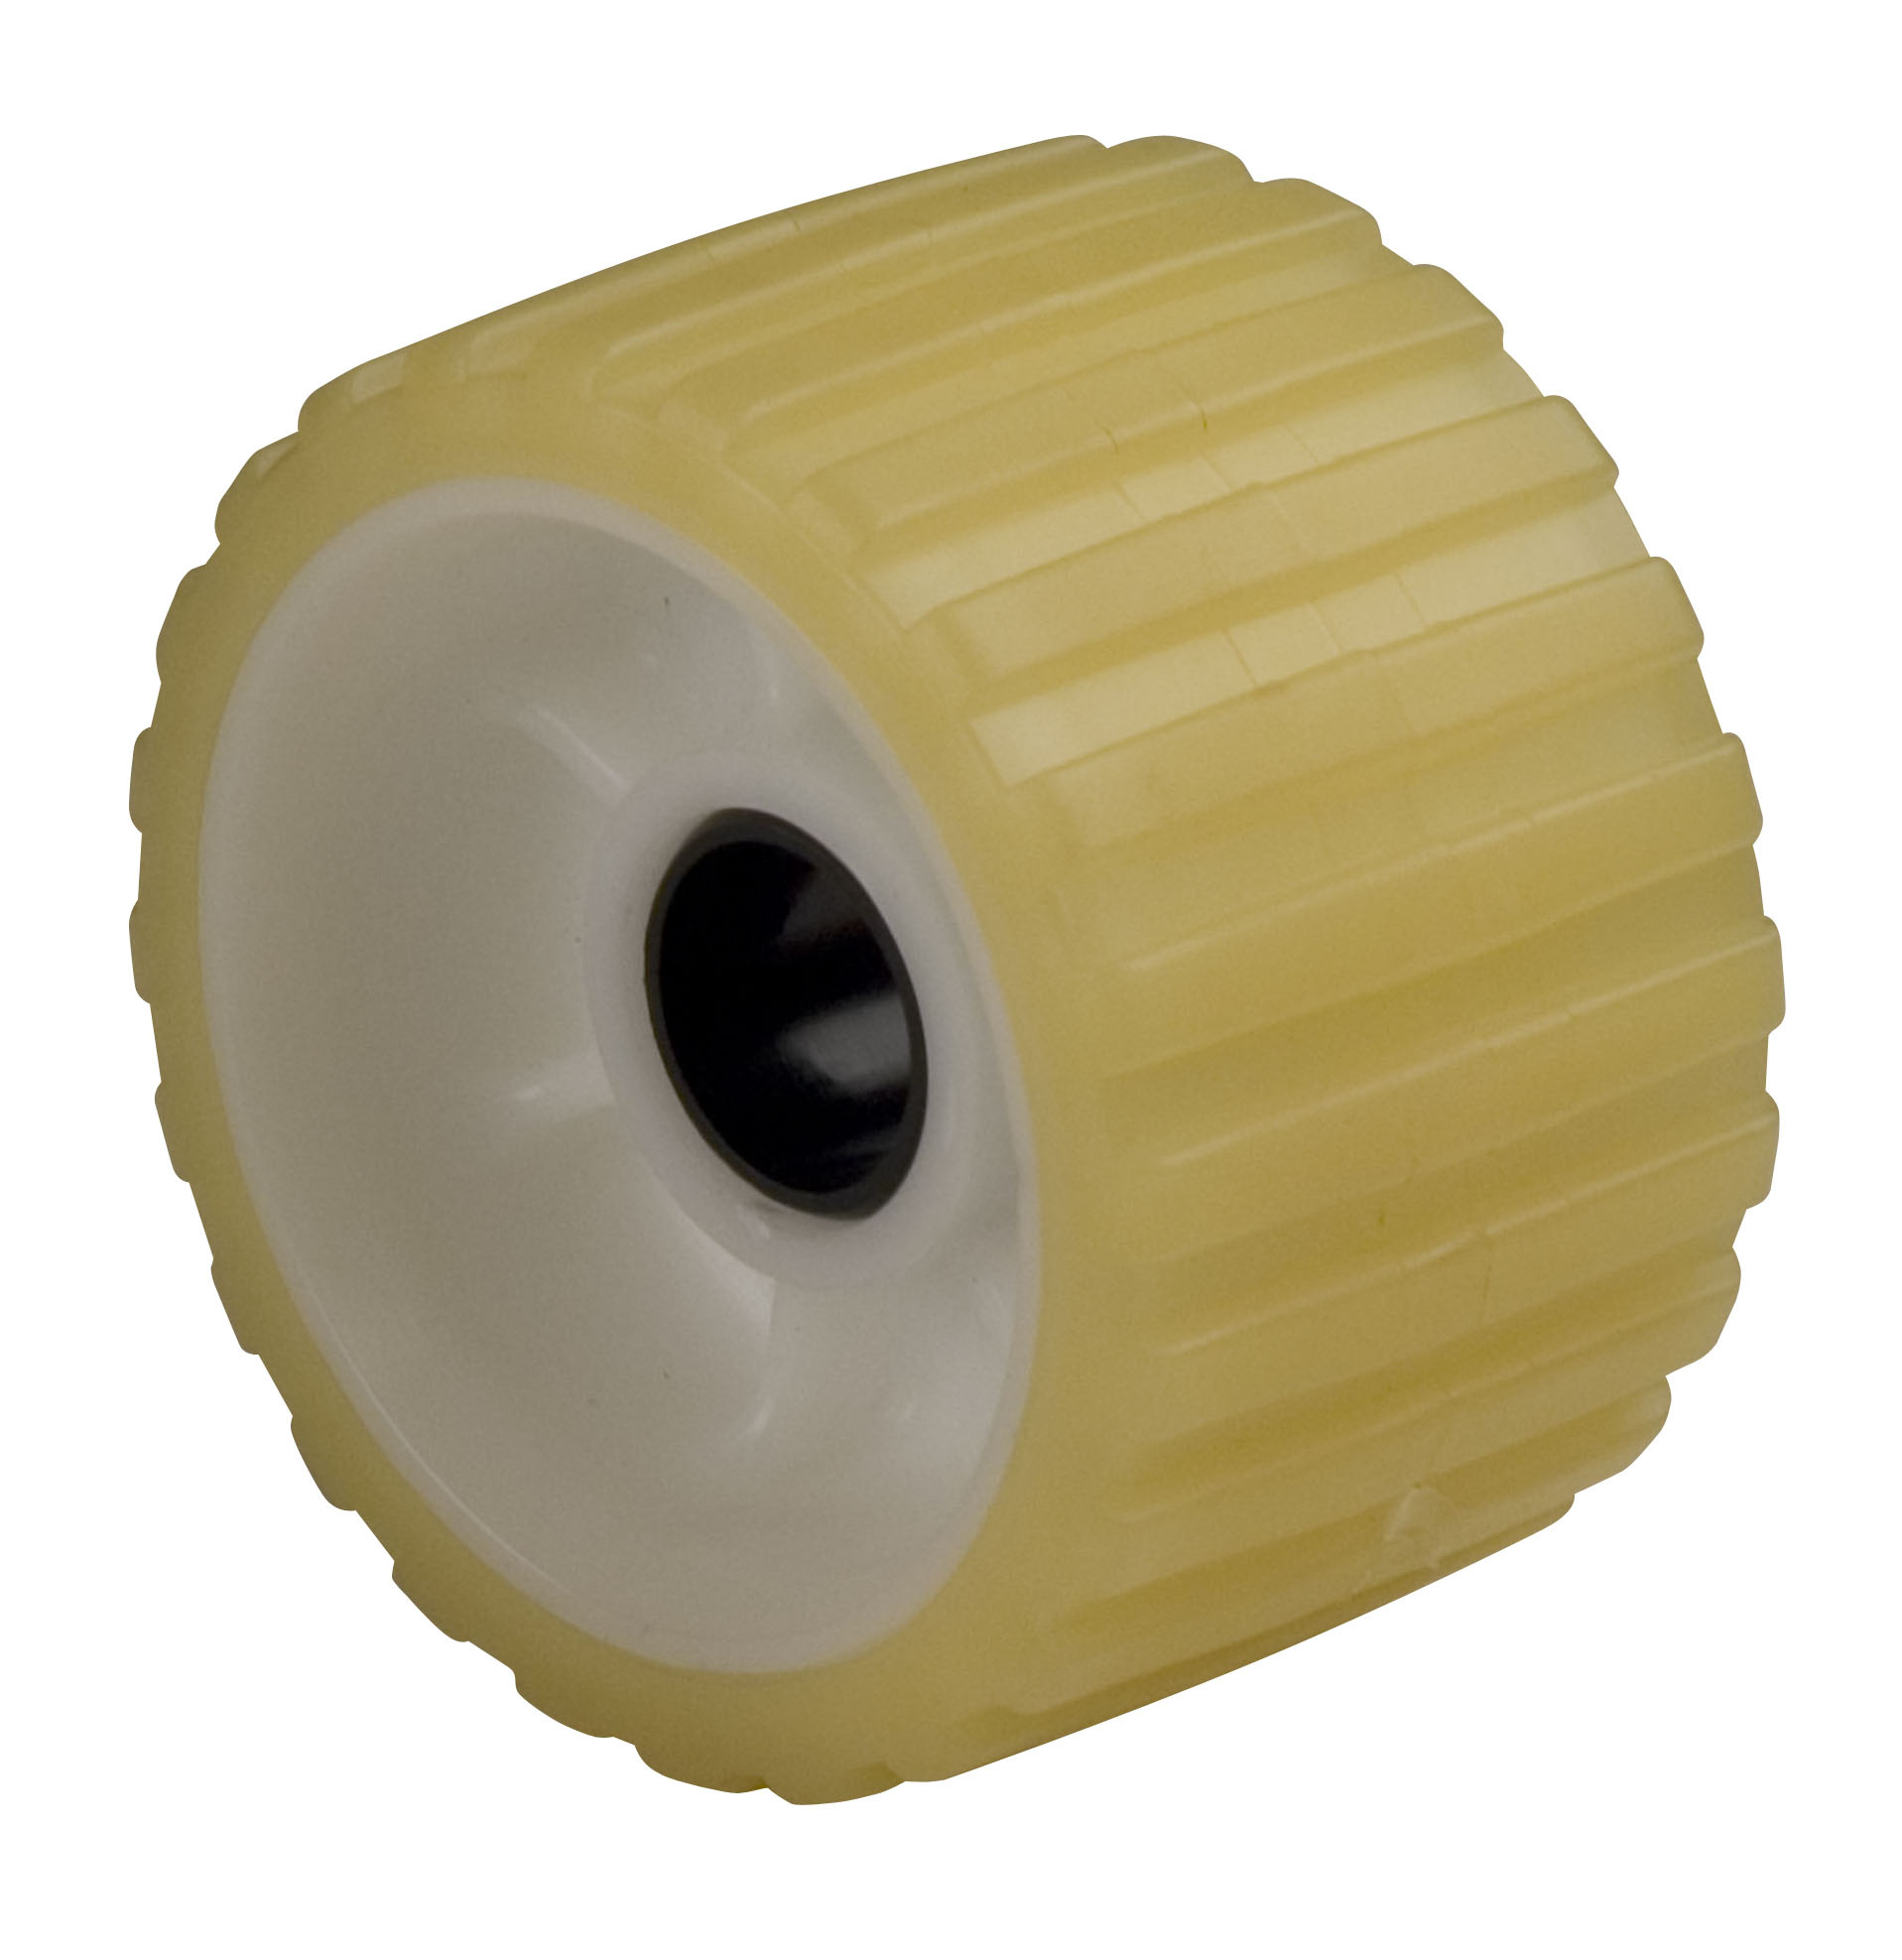 "Ribbed Roller Yellow Tpr, 1-1/8"" Shaft MAIN"